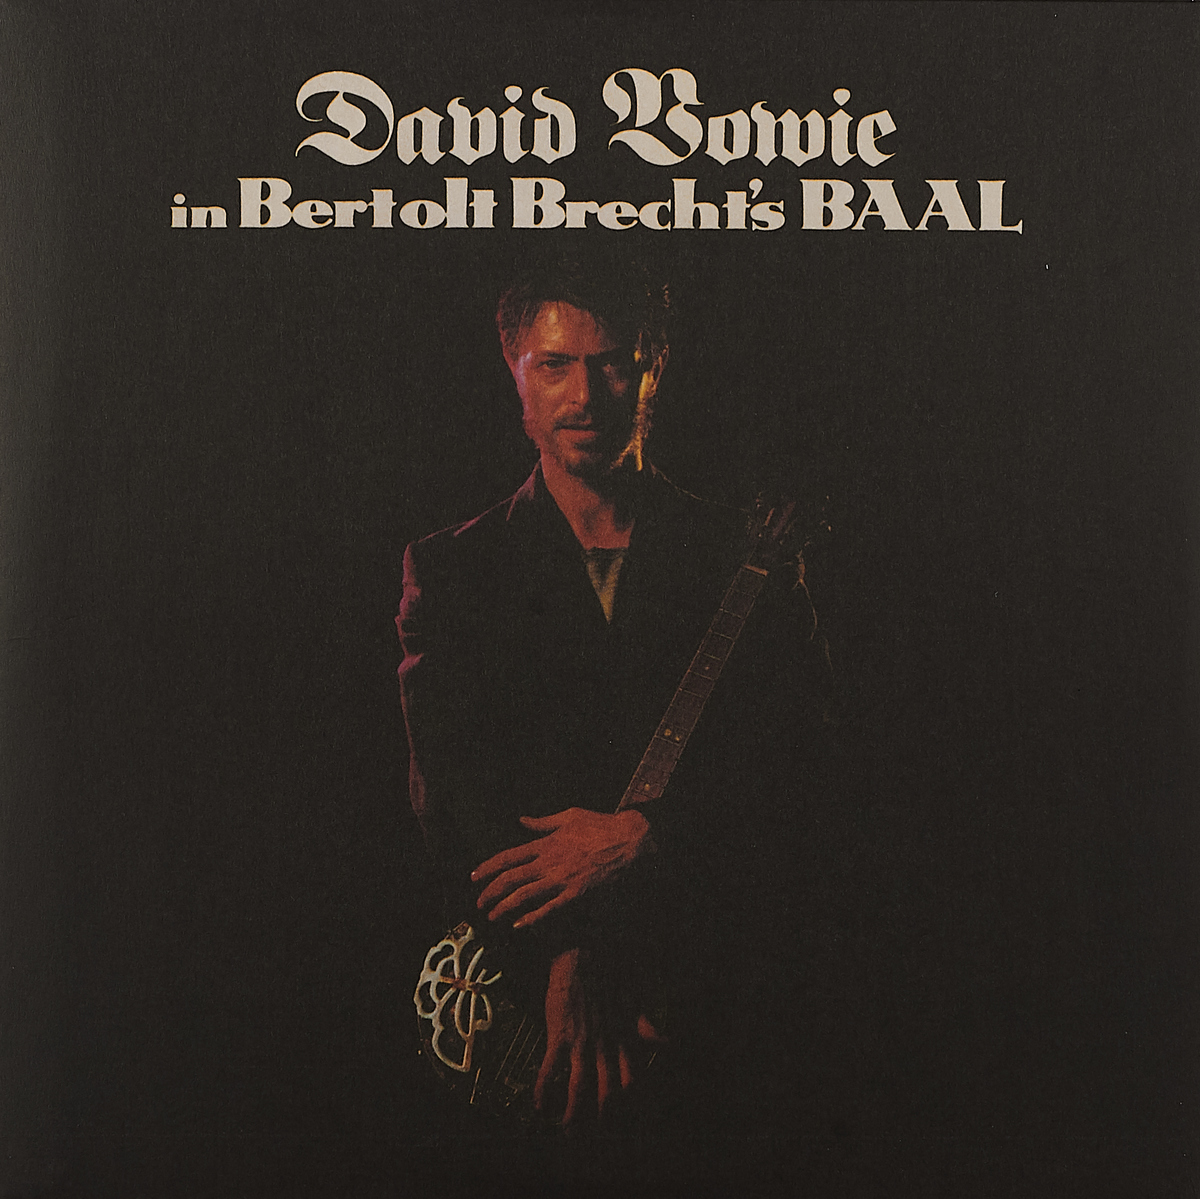 Дэвид Боуи David Bowie. David Bowie In Bertolt Brecht's Baal (LP) дэвид боуи david bowie the best of 1980 1987 cd dvd